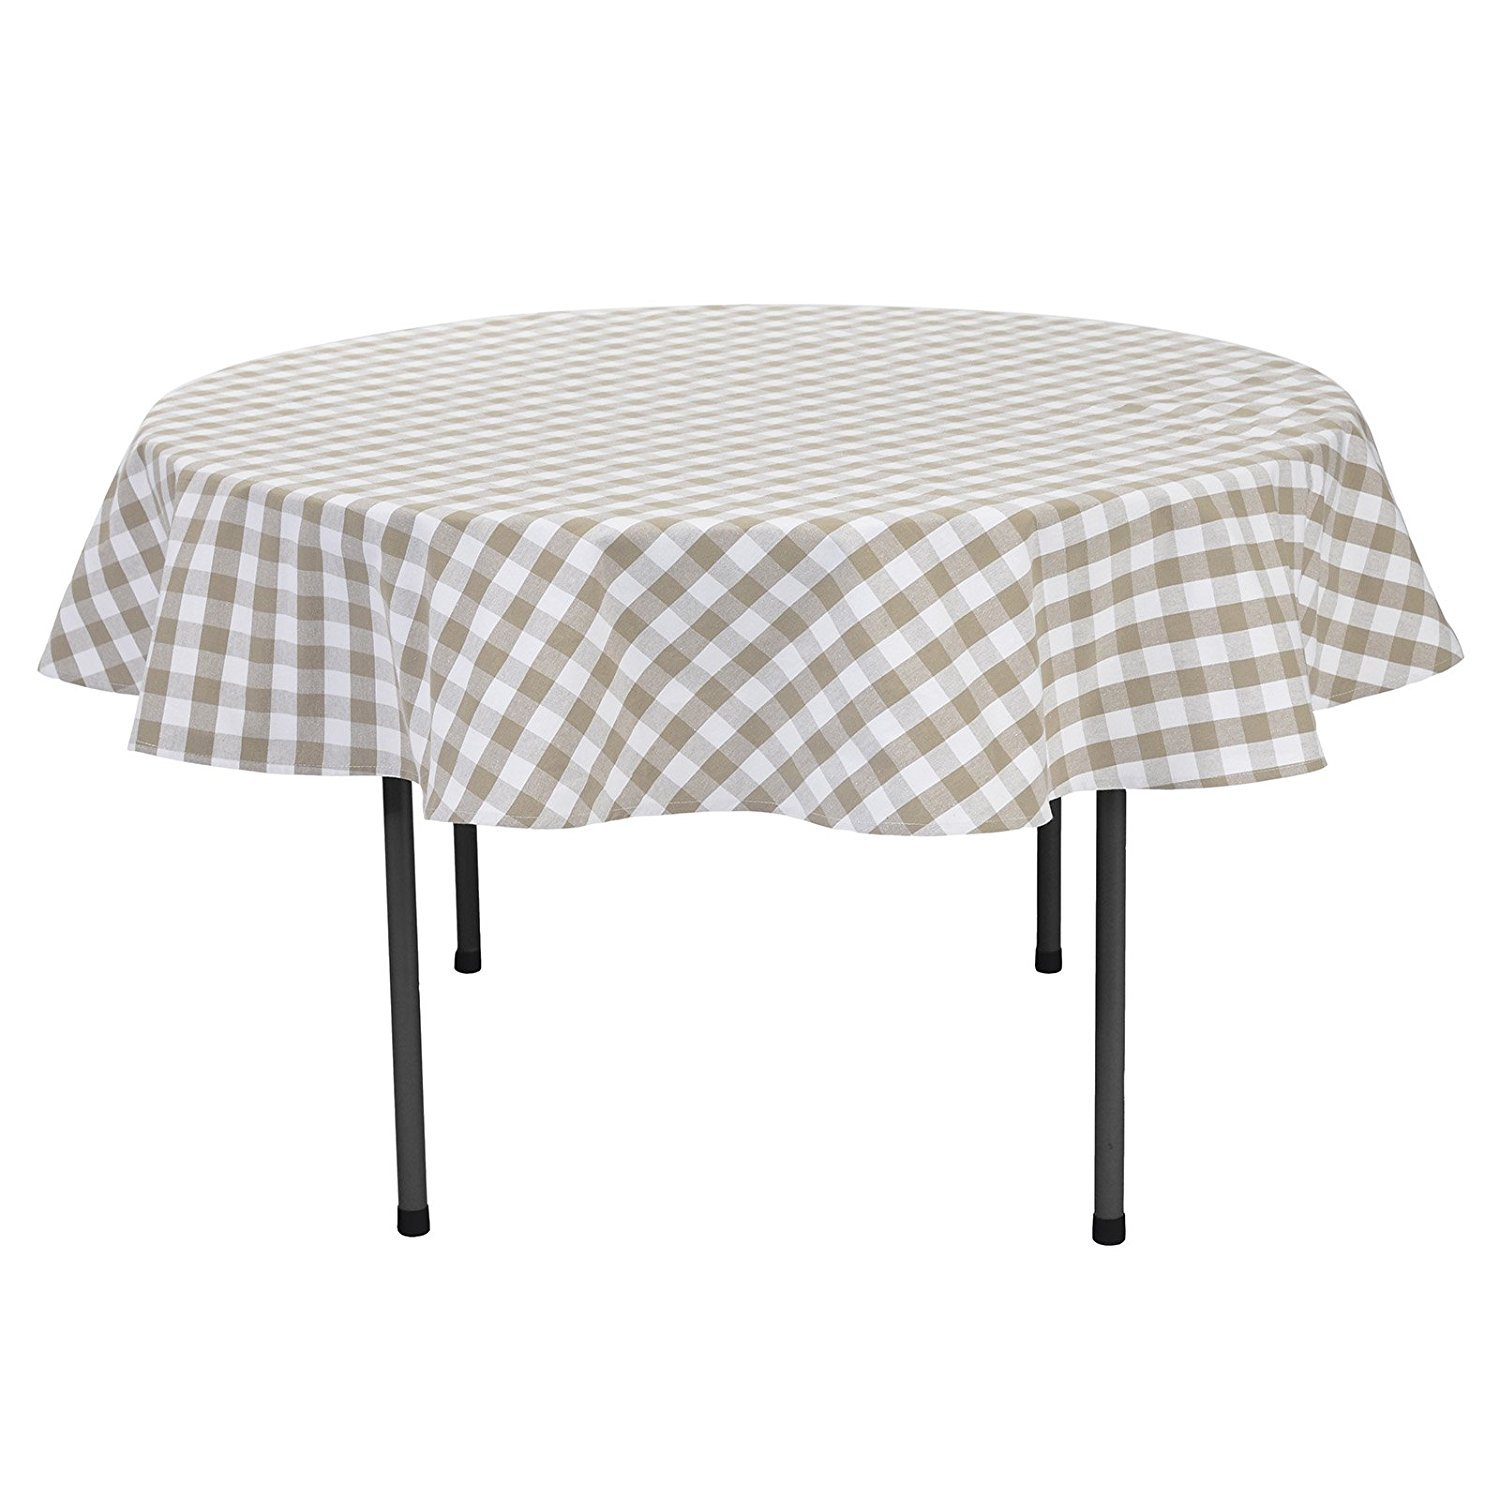 VEEYOO Square Plaid Check Tablecloth Gingham 100% Cotton for Home Kitchen Party Indoor or Outdoor Use 52 x 52 inch (Seats 4 People), Lime & White VYZB1610CT52CP1SP06-FBA